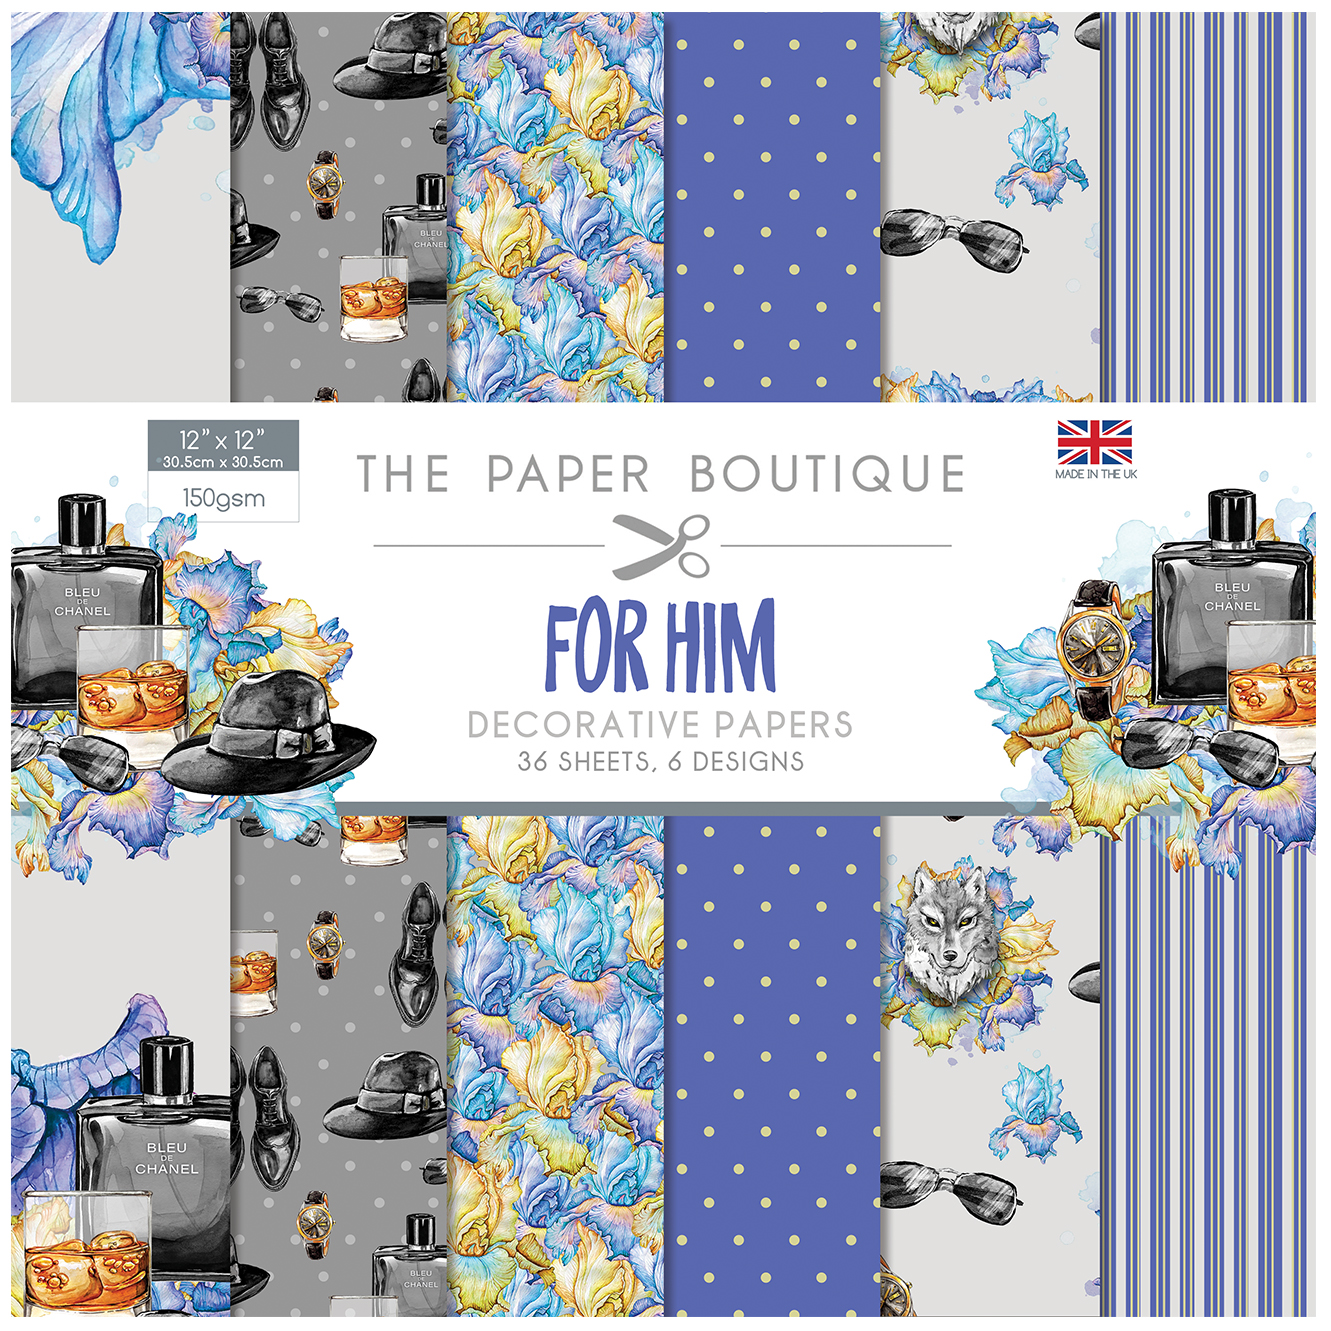 The Paper Boutique For Him 12″ x 12″ Paper Pad